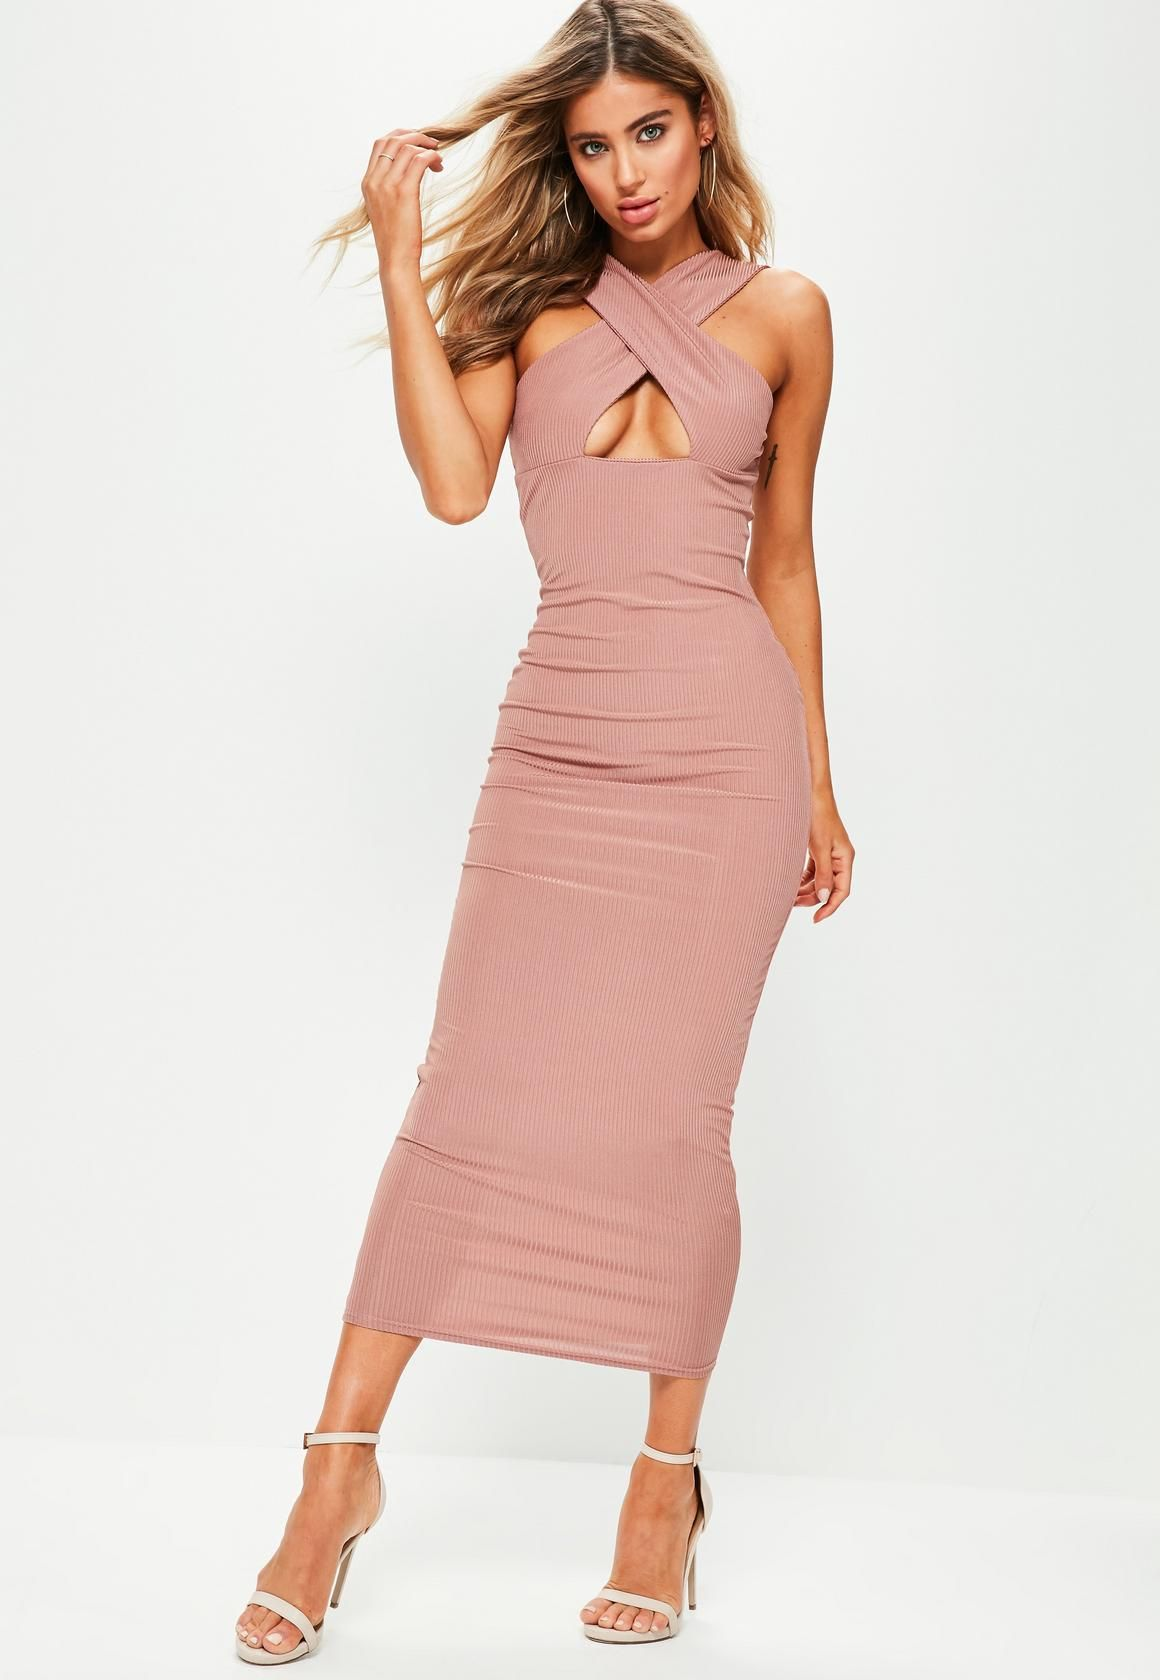 Missguided Pink Ribbed Cross Front Ankle Grazer Dress